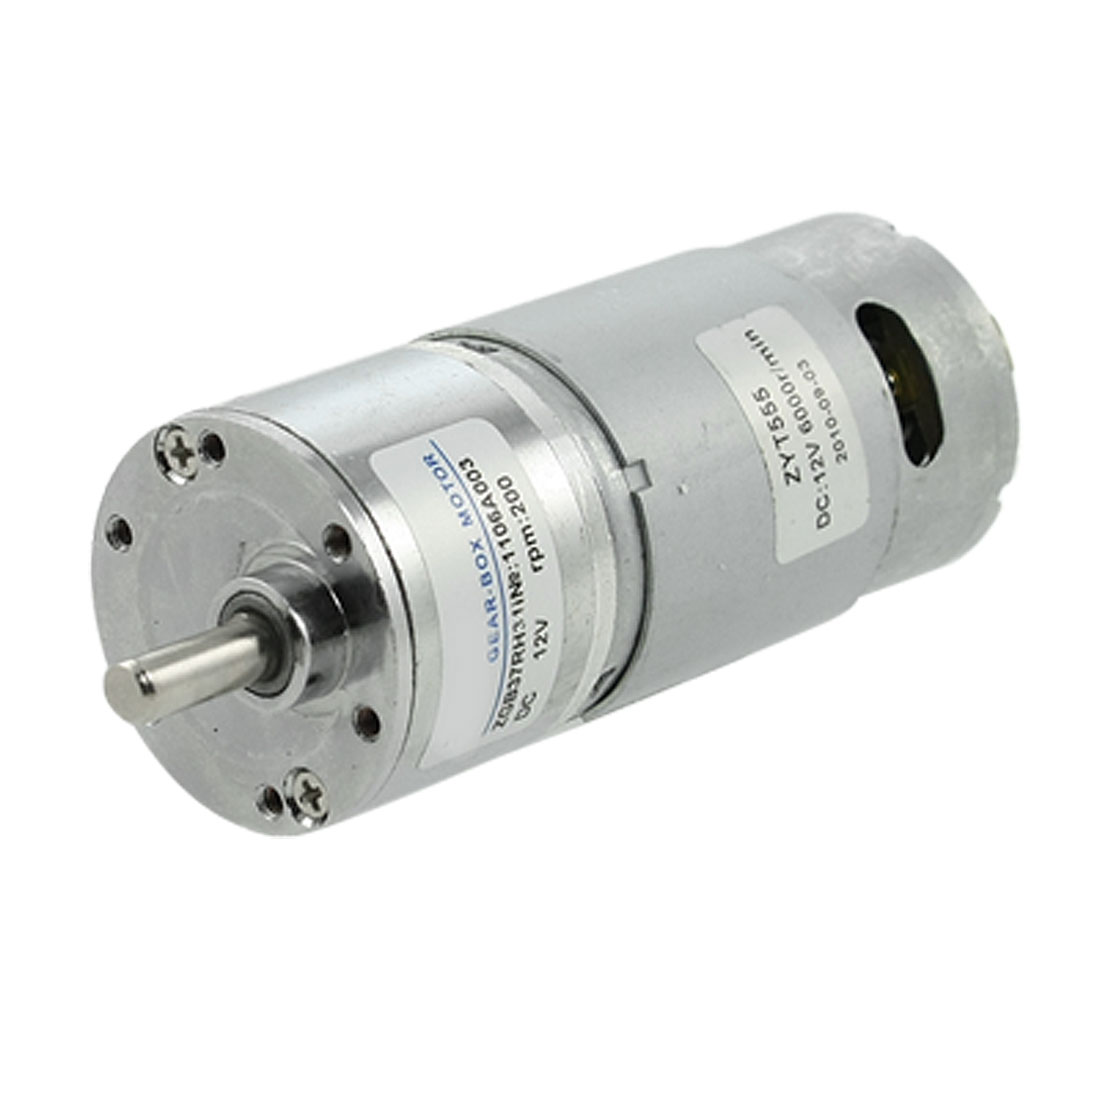 200RPM 12V 2.1A 5.8Kg.cm Torque DC Geared Motor Gear Reduction Box